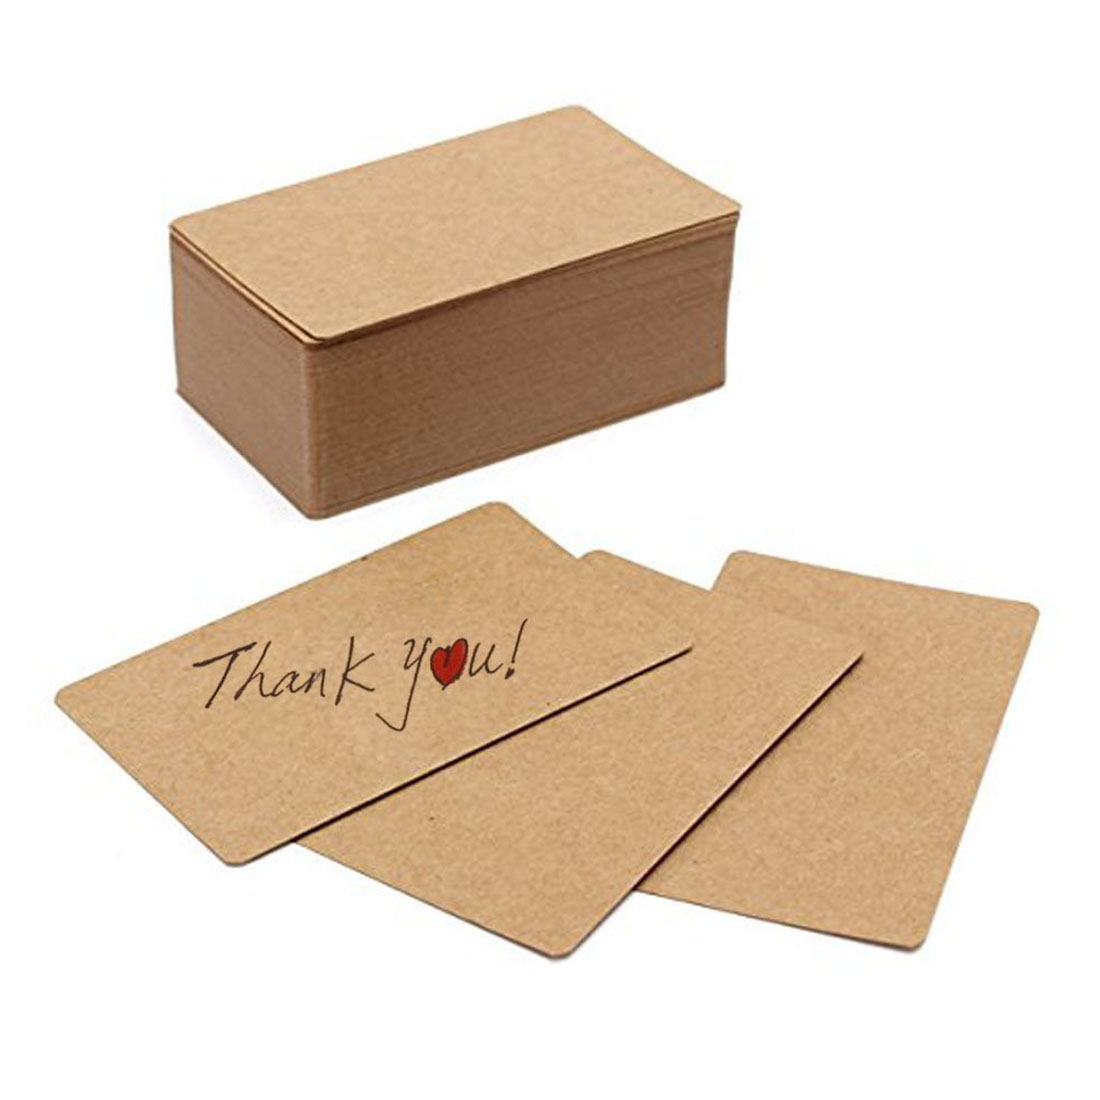 100pcs Blank Kraft paper Business Cards Word Card Message Card DIY Gift Card image